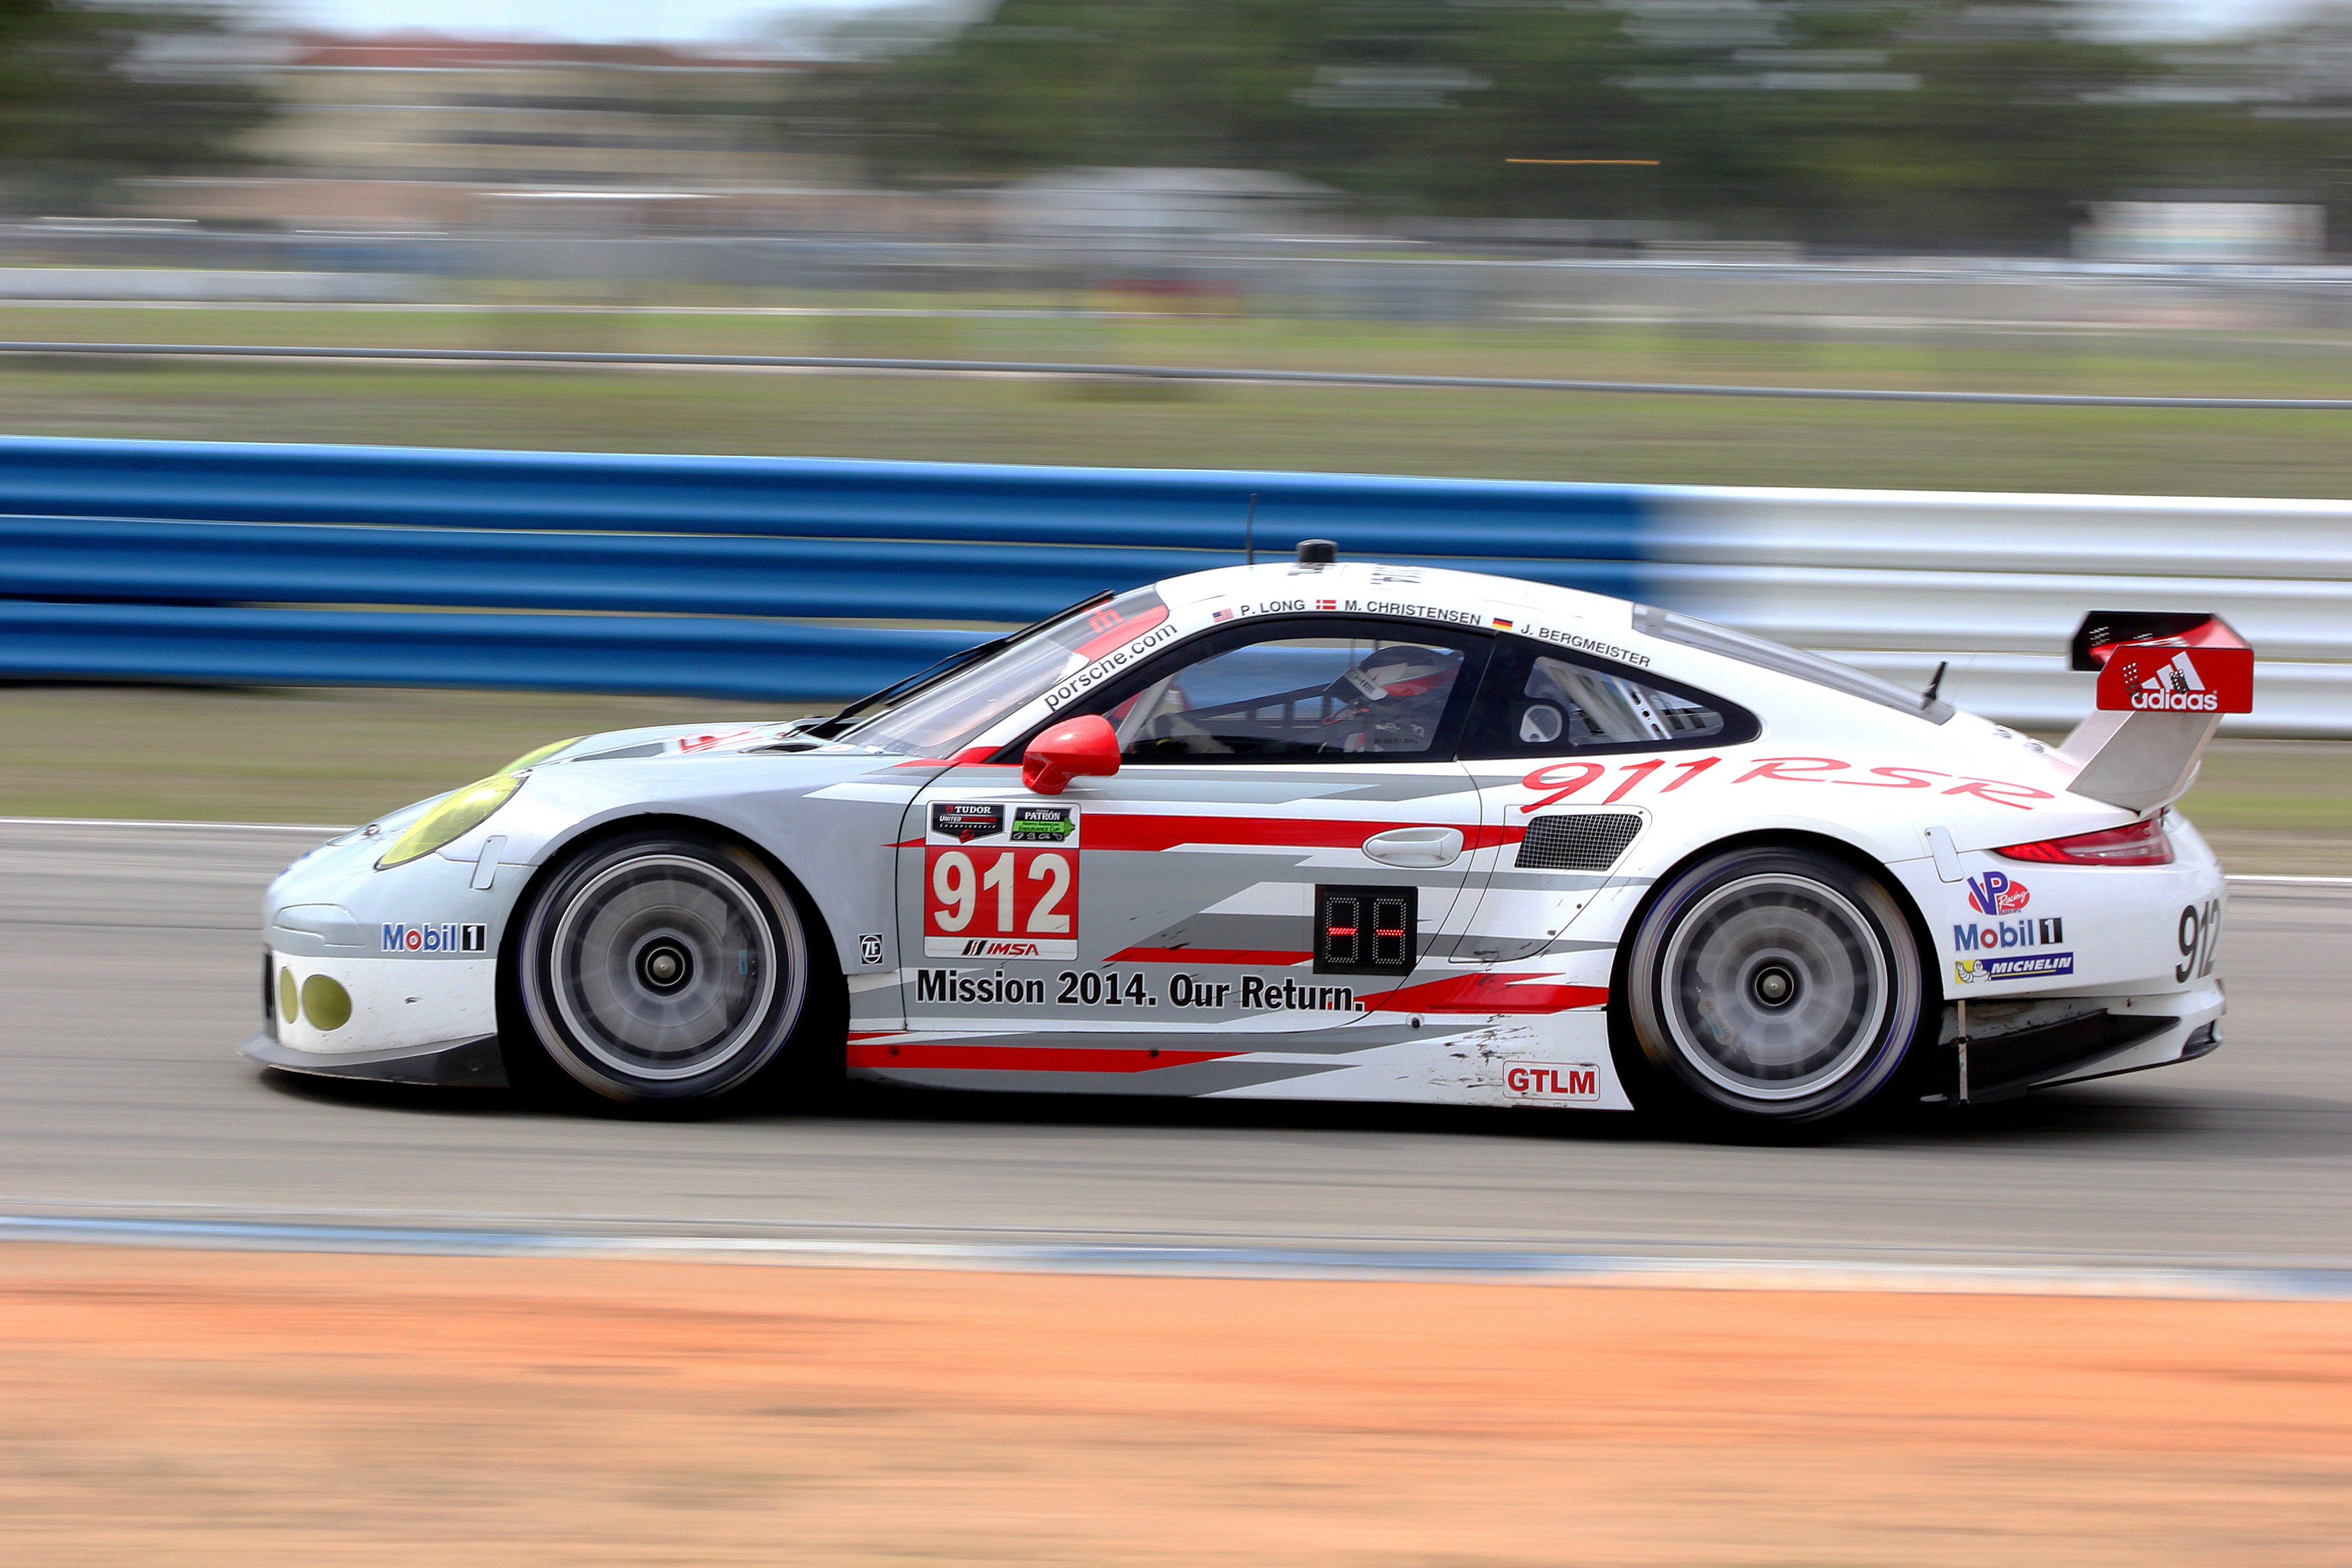 The Porsche North America 911 RSR #912 was quickest in the morning with a lap of 2:00.41 at 112.162 mph, the quickest GT lap of the Test so far. (Chris Jasurek/Epoch Times)